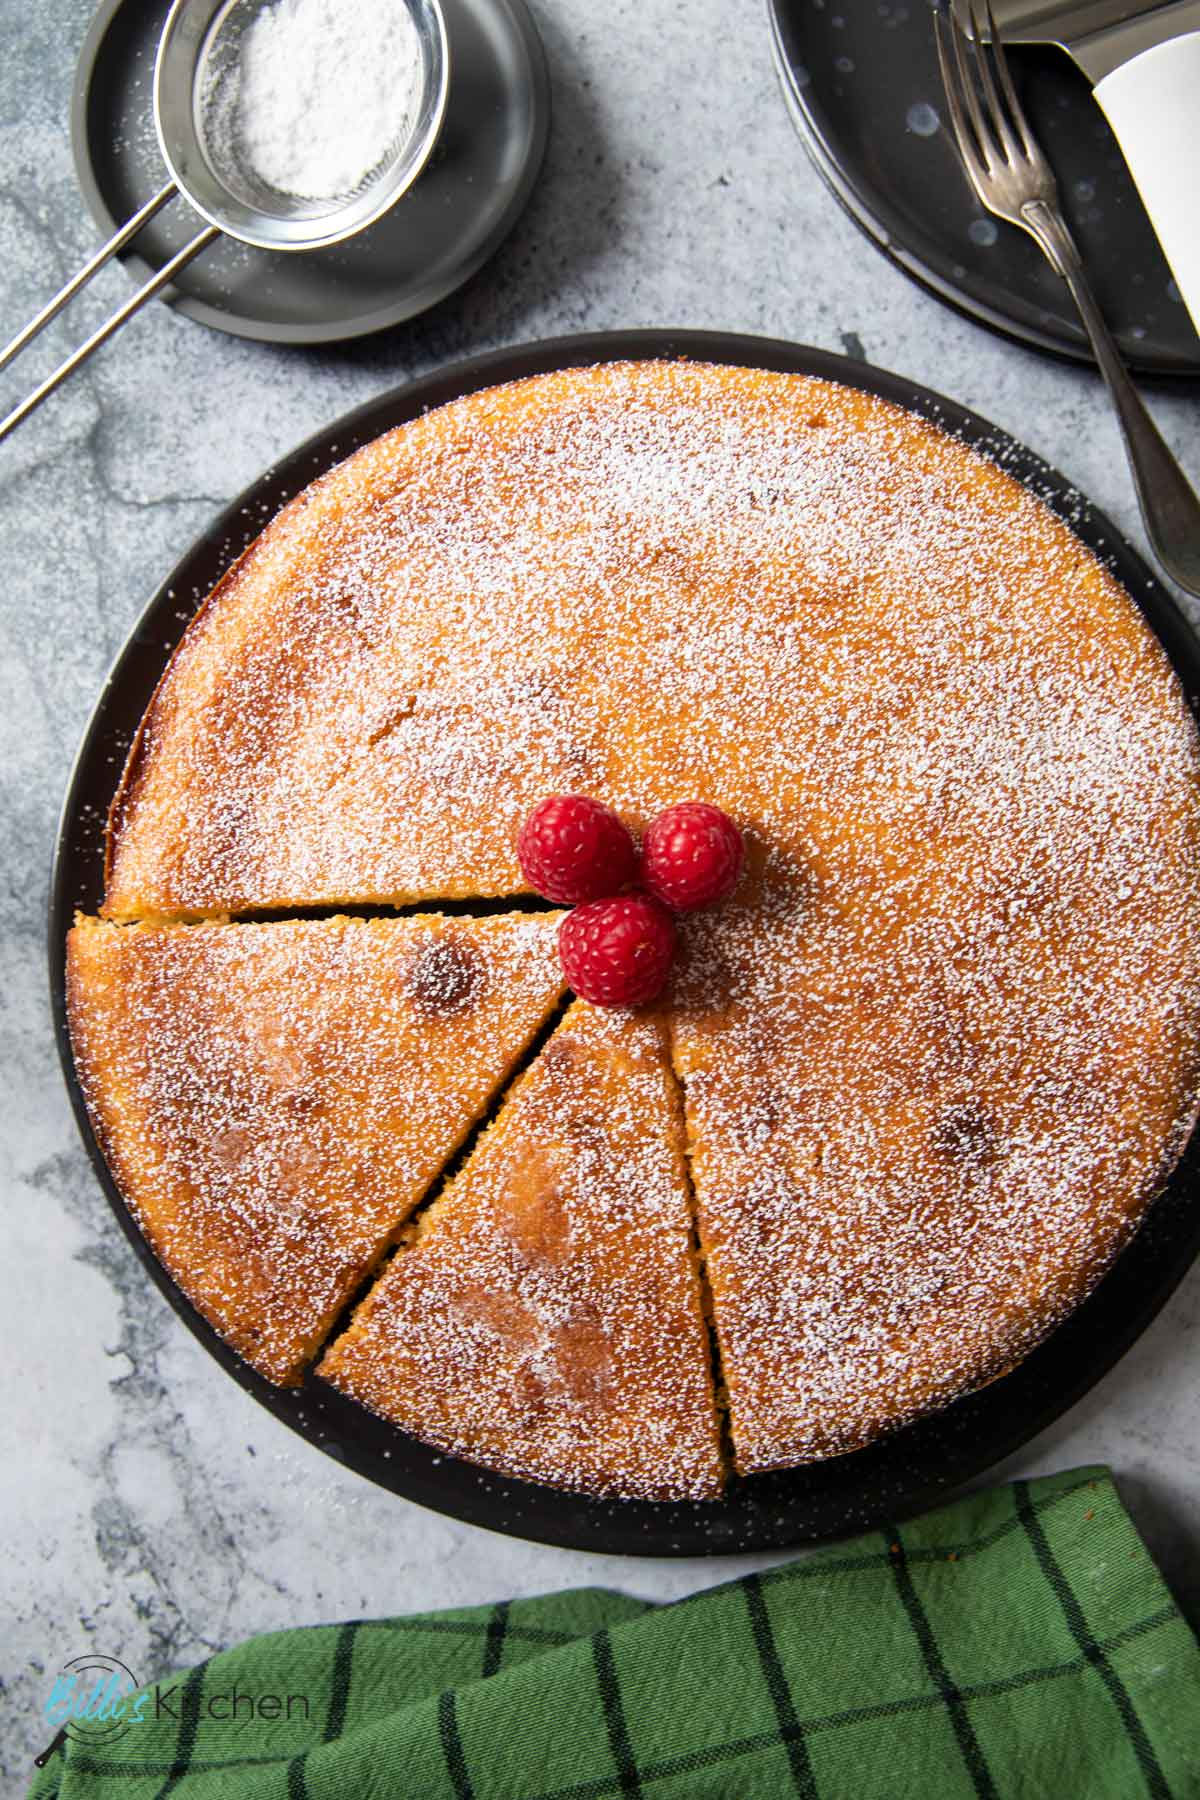 An overhead shot of freshly baked lemon ricotta cake, dusted with powdered sugar and with couple of slices ready for serving.